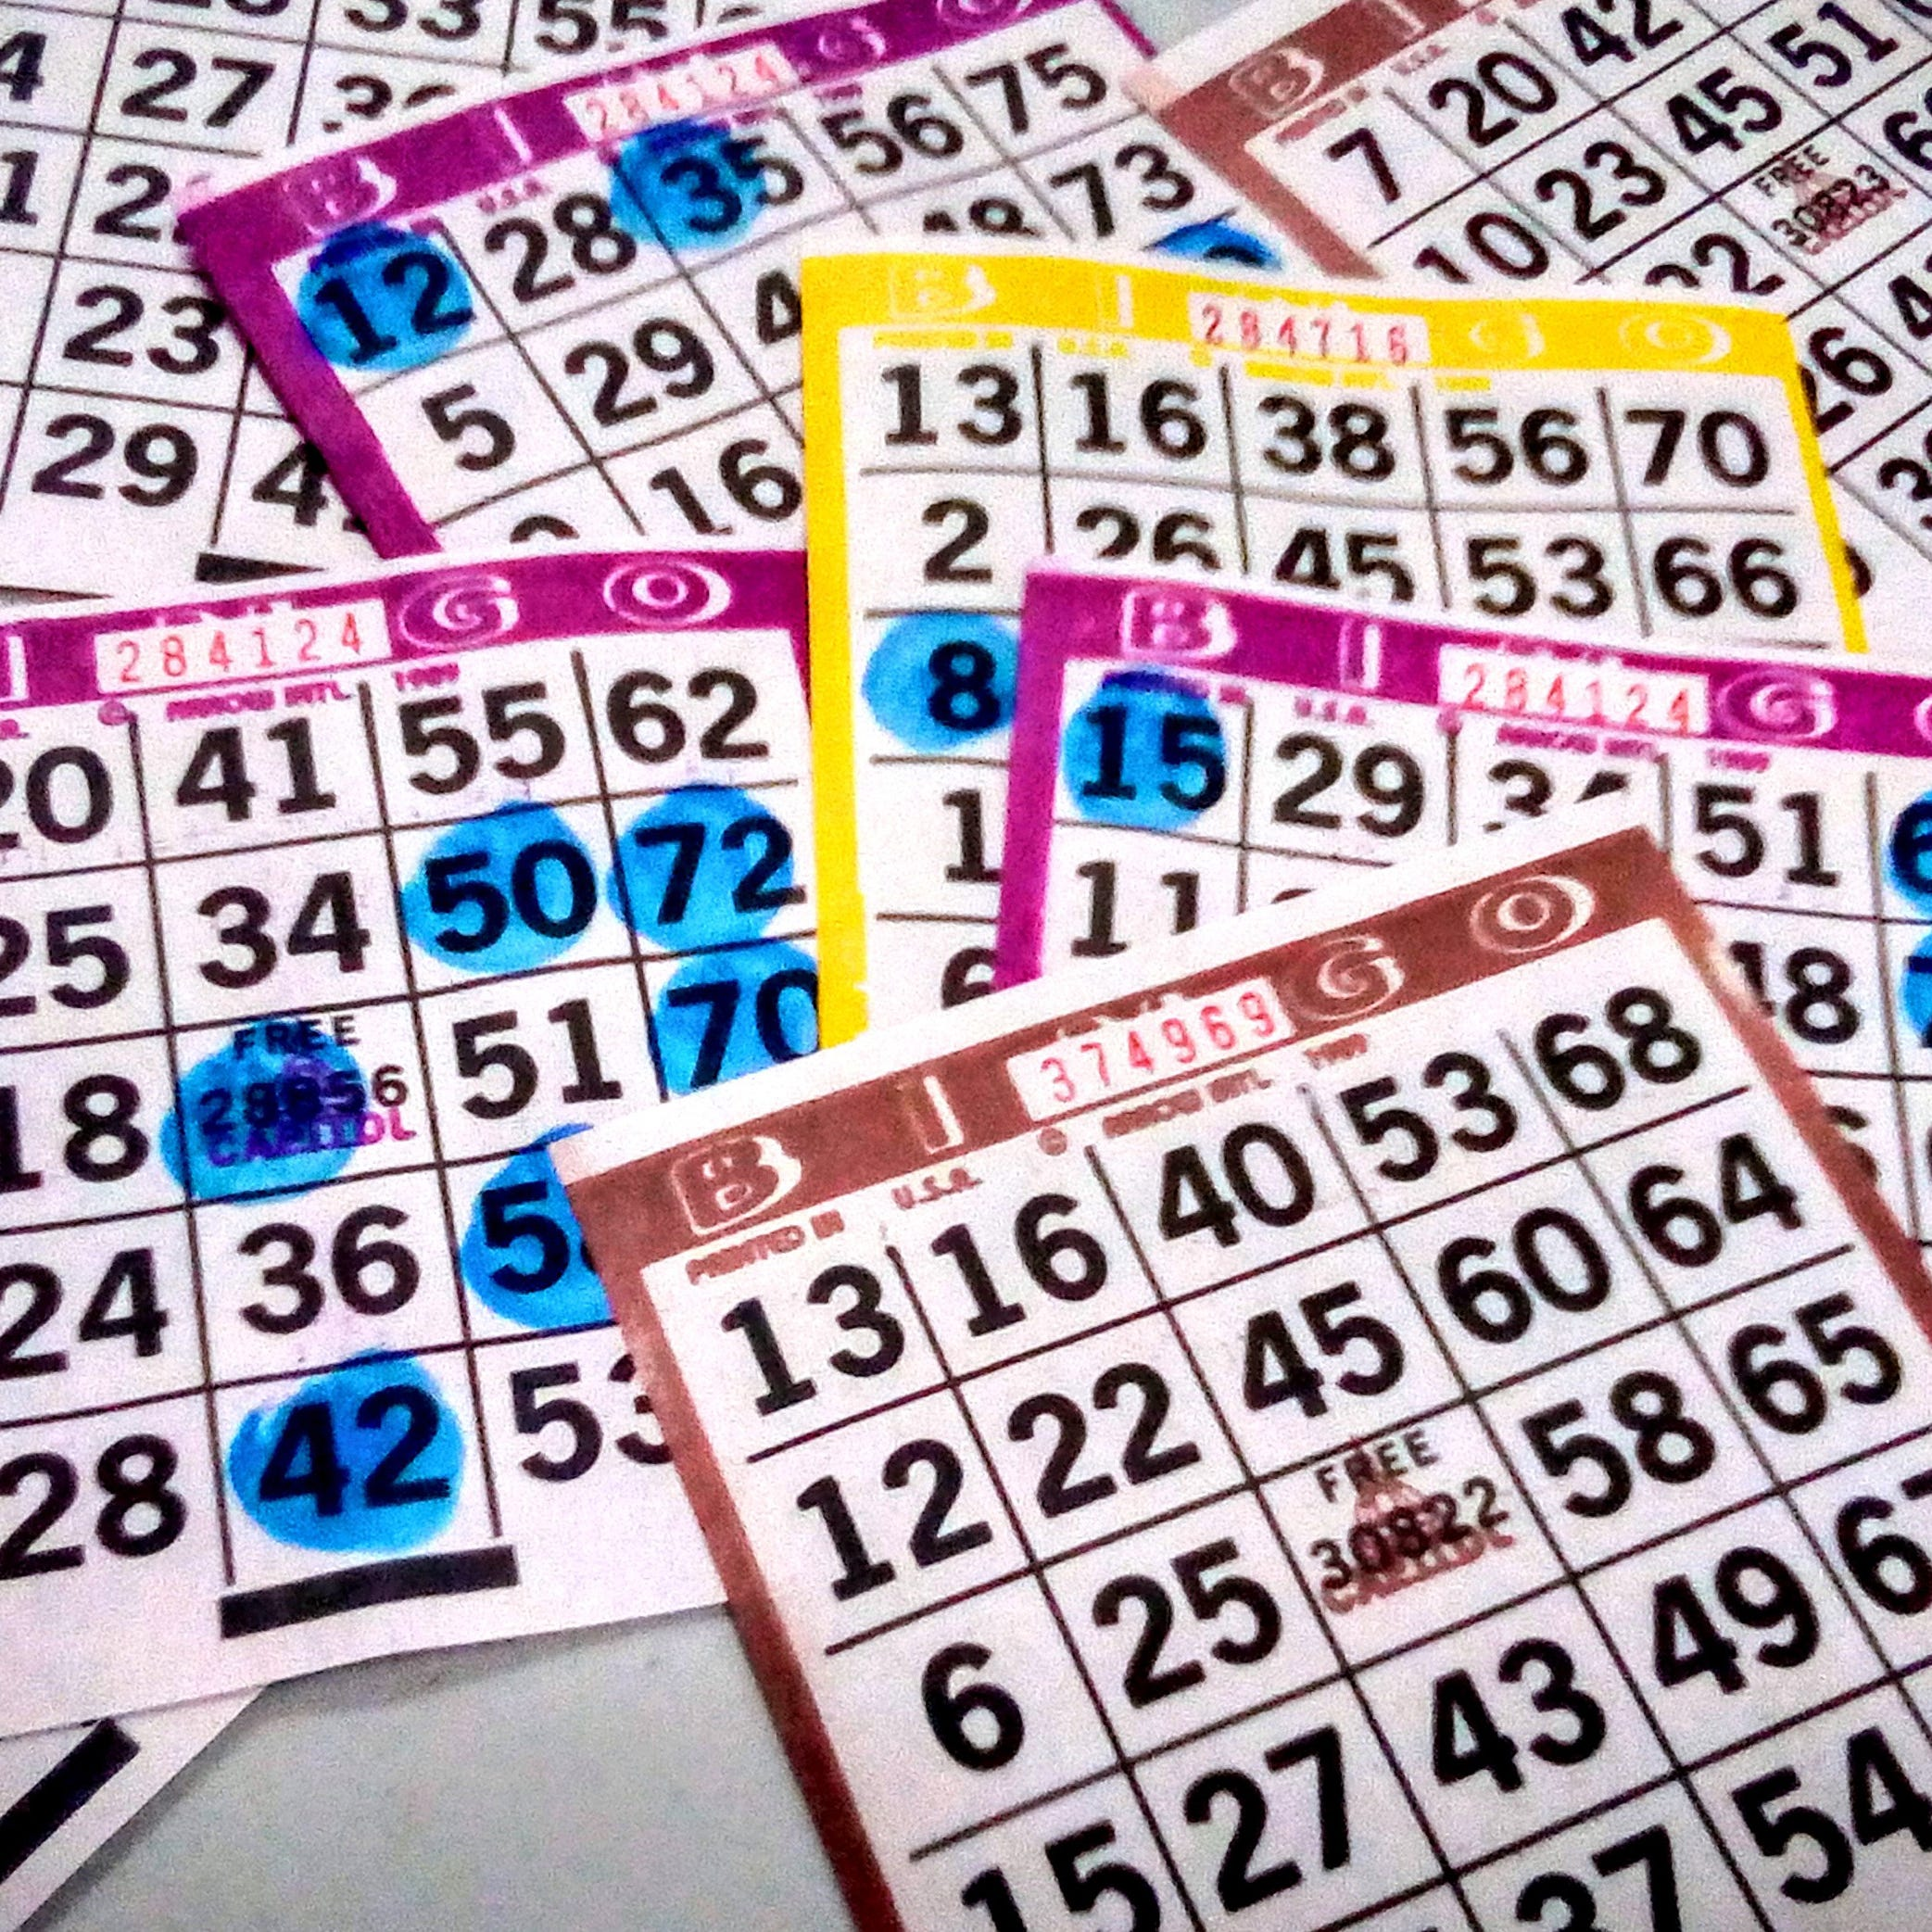 Pensacola-area couple behind illegal bingo game scheme must forfeit $6 million, judge orders